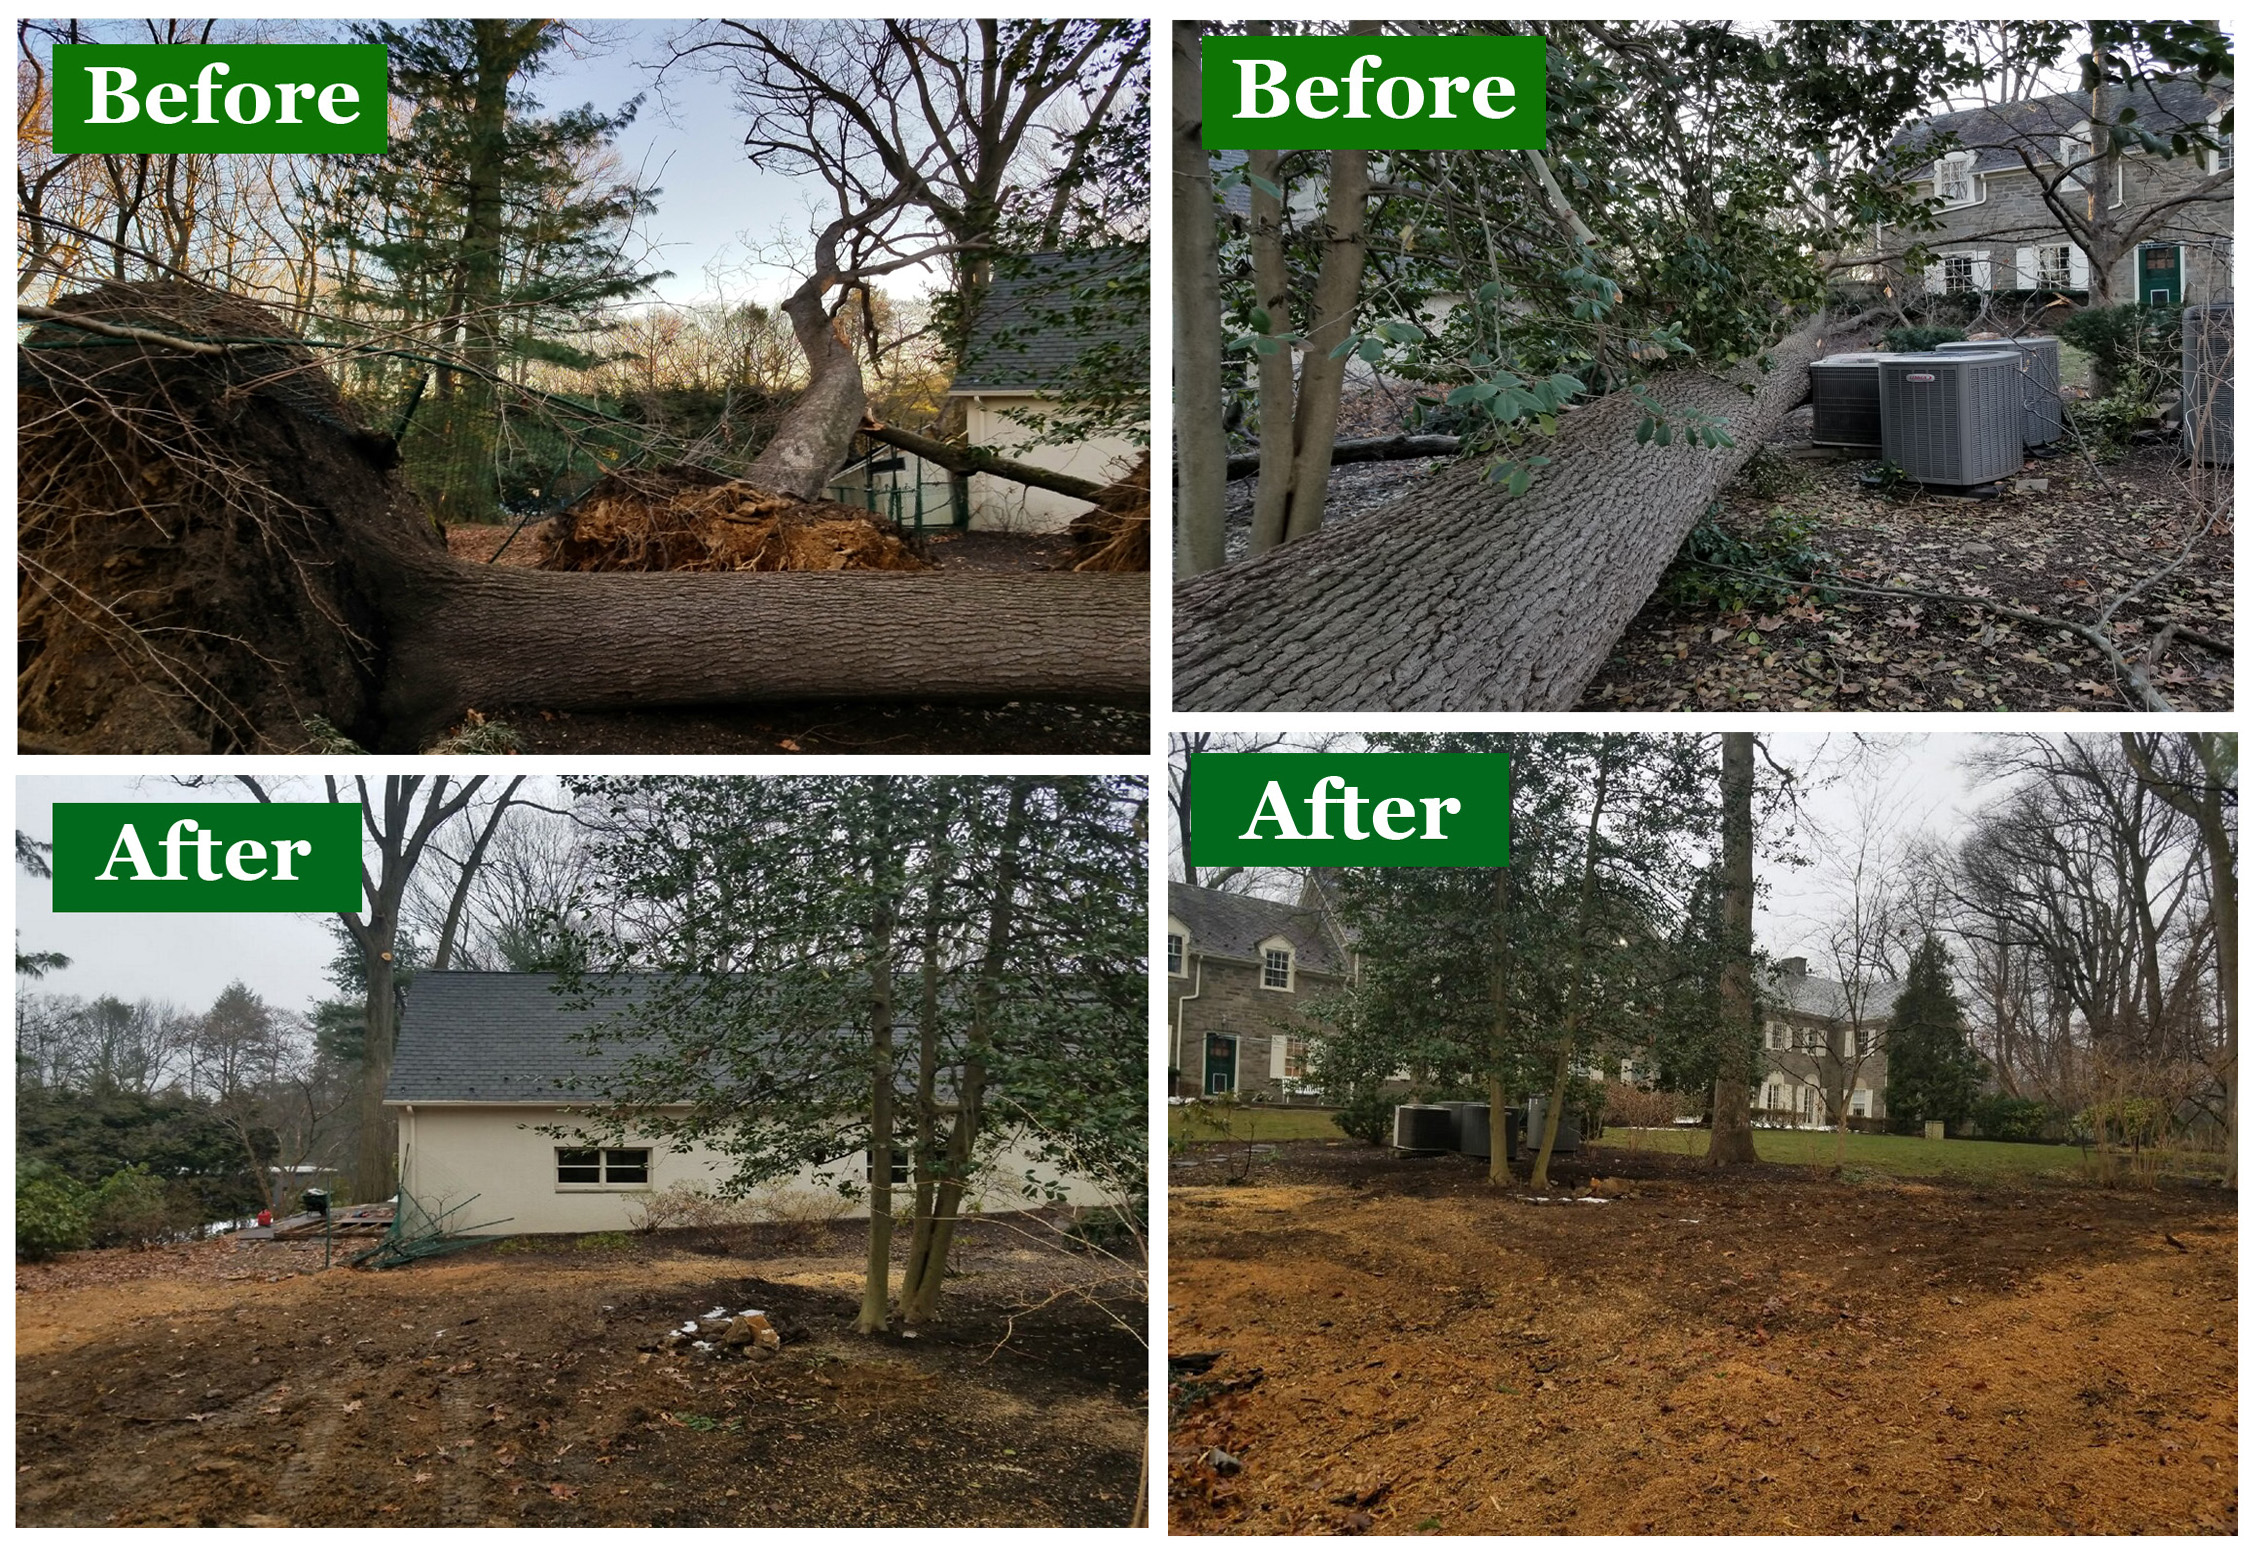 2018-Mar-2-Winter-Storm-Meadowbrook-Nagy-Rombold-Newcombe-Leary-Before-After-3